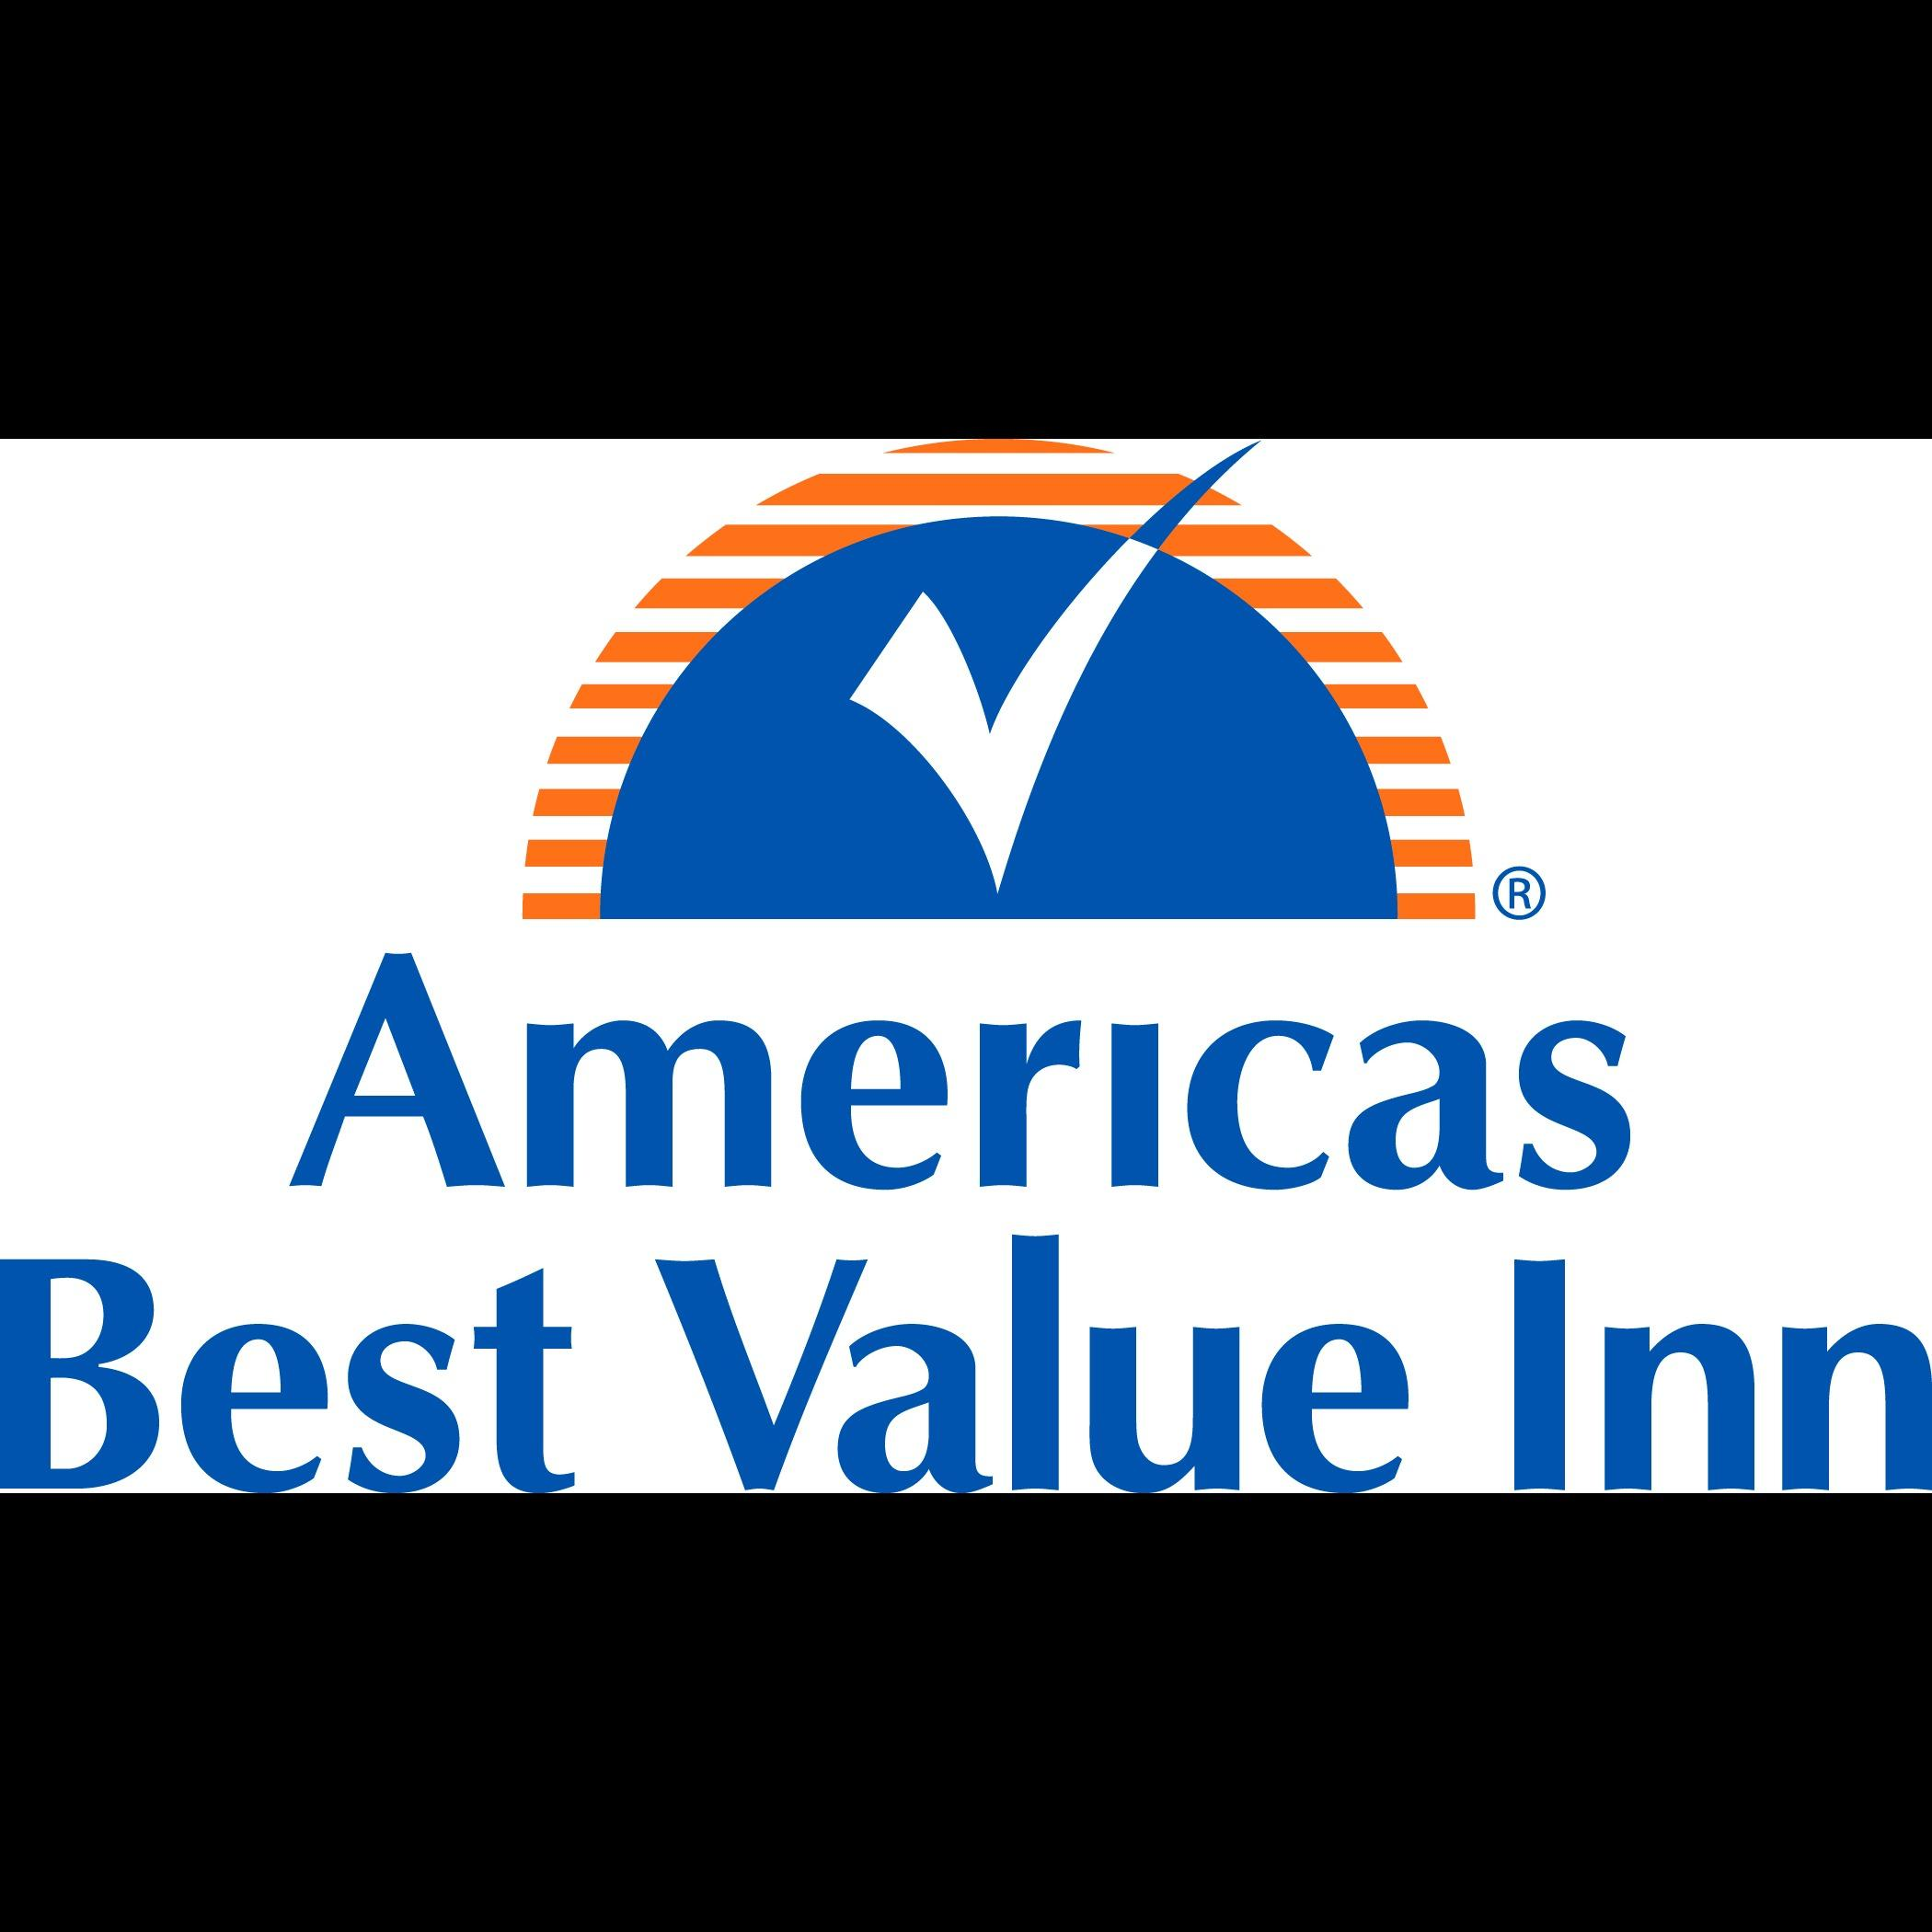 Americas Best Value Inn image 12